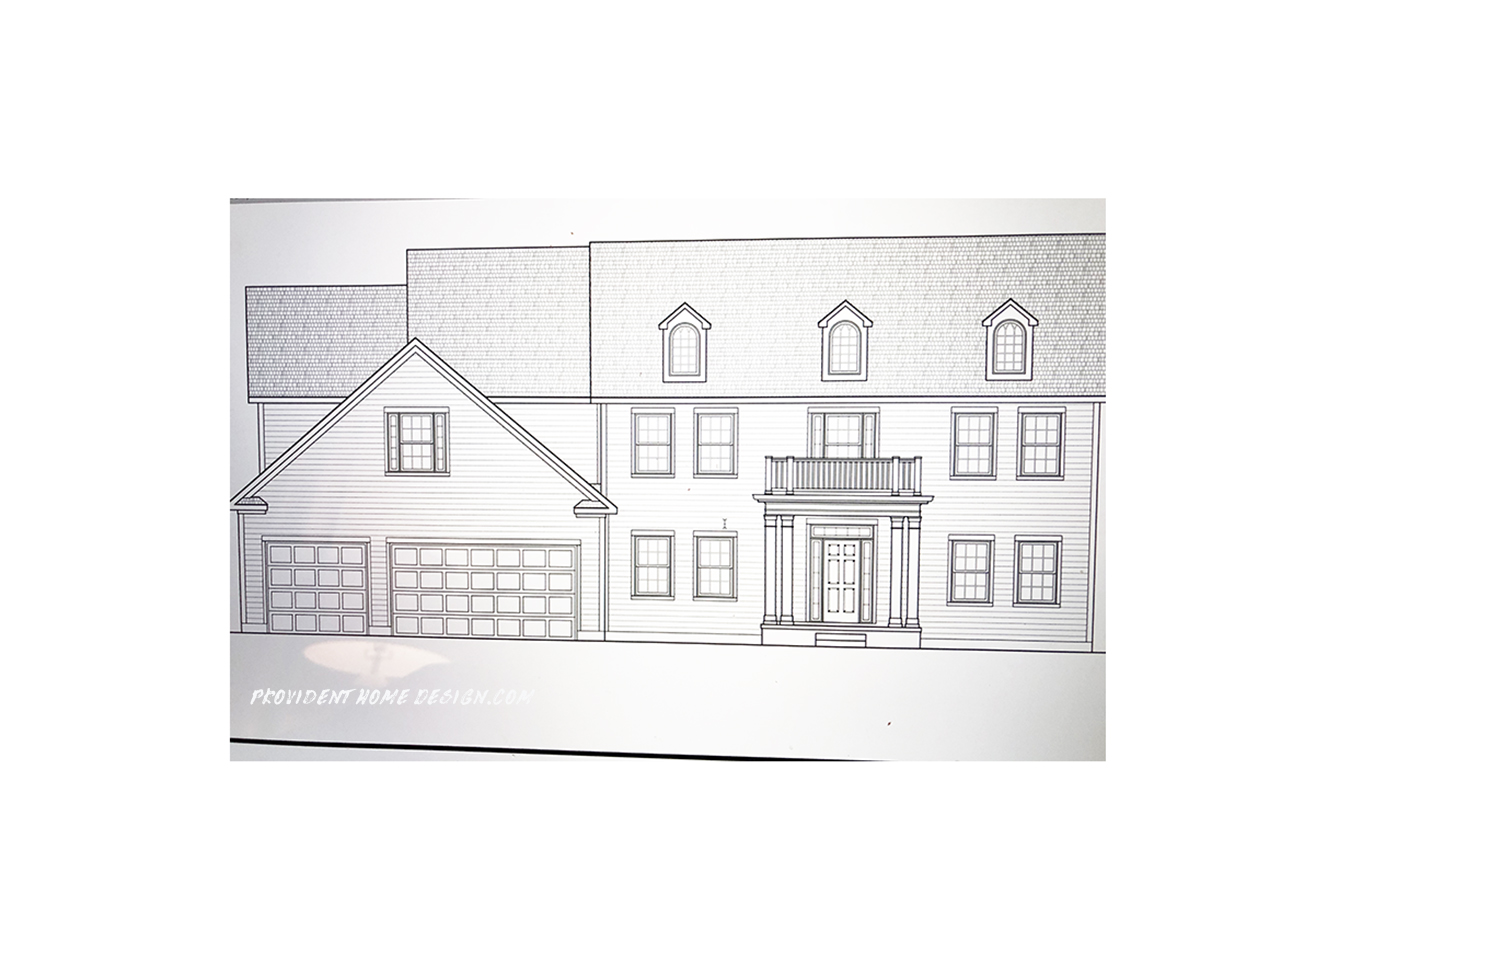 Home Design Sketch The Exterior Drawing Of The House We Are Building Provident Home